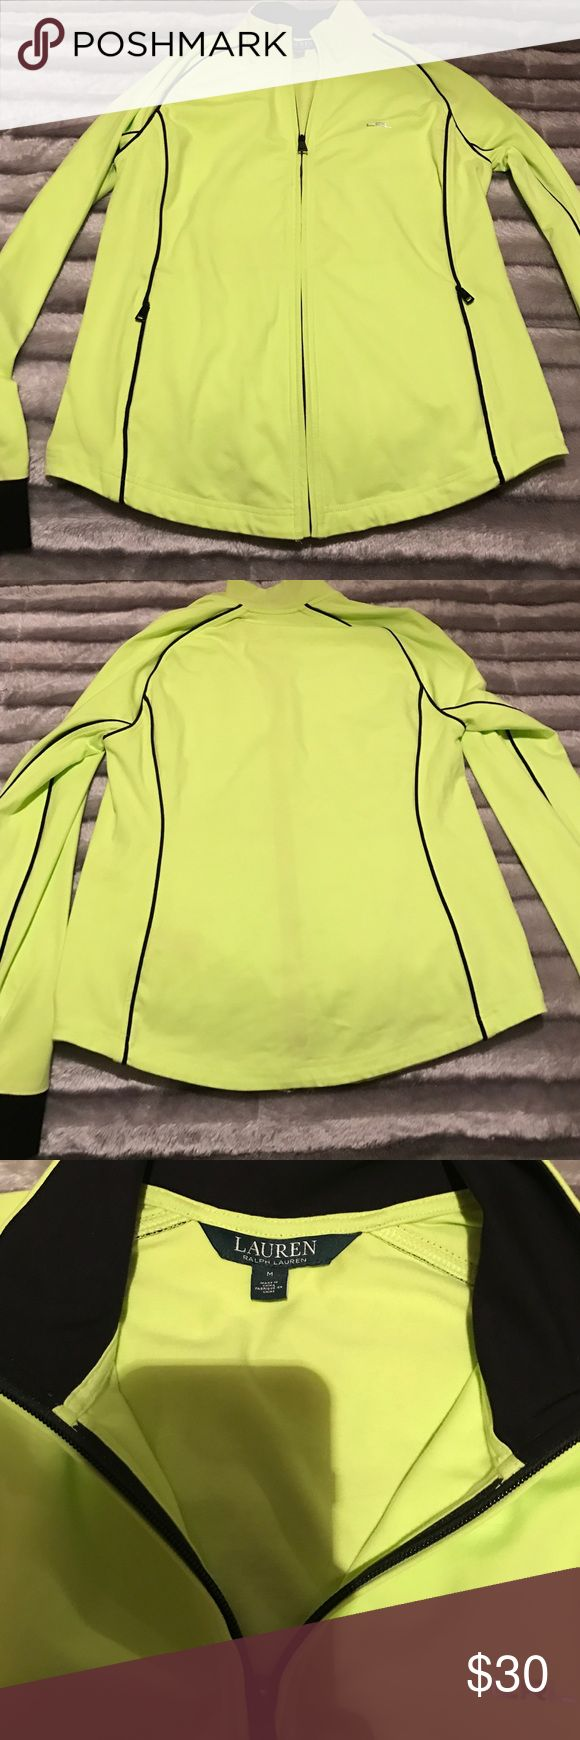 Woman's polo Ralph Lauren zip up shirt. It is woman's size medium, color is bright yellow & black. Green label Lauren Ralph Lauren Tops Sweatshirts & Hoodies